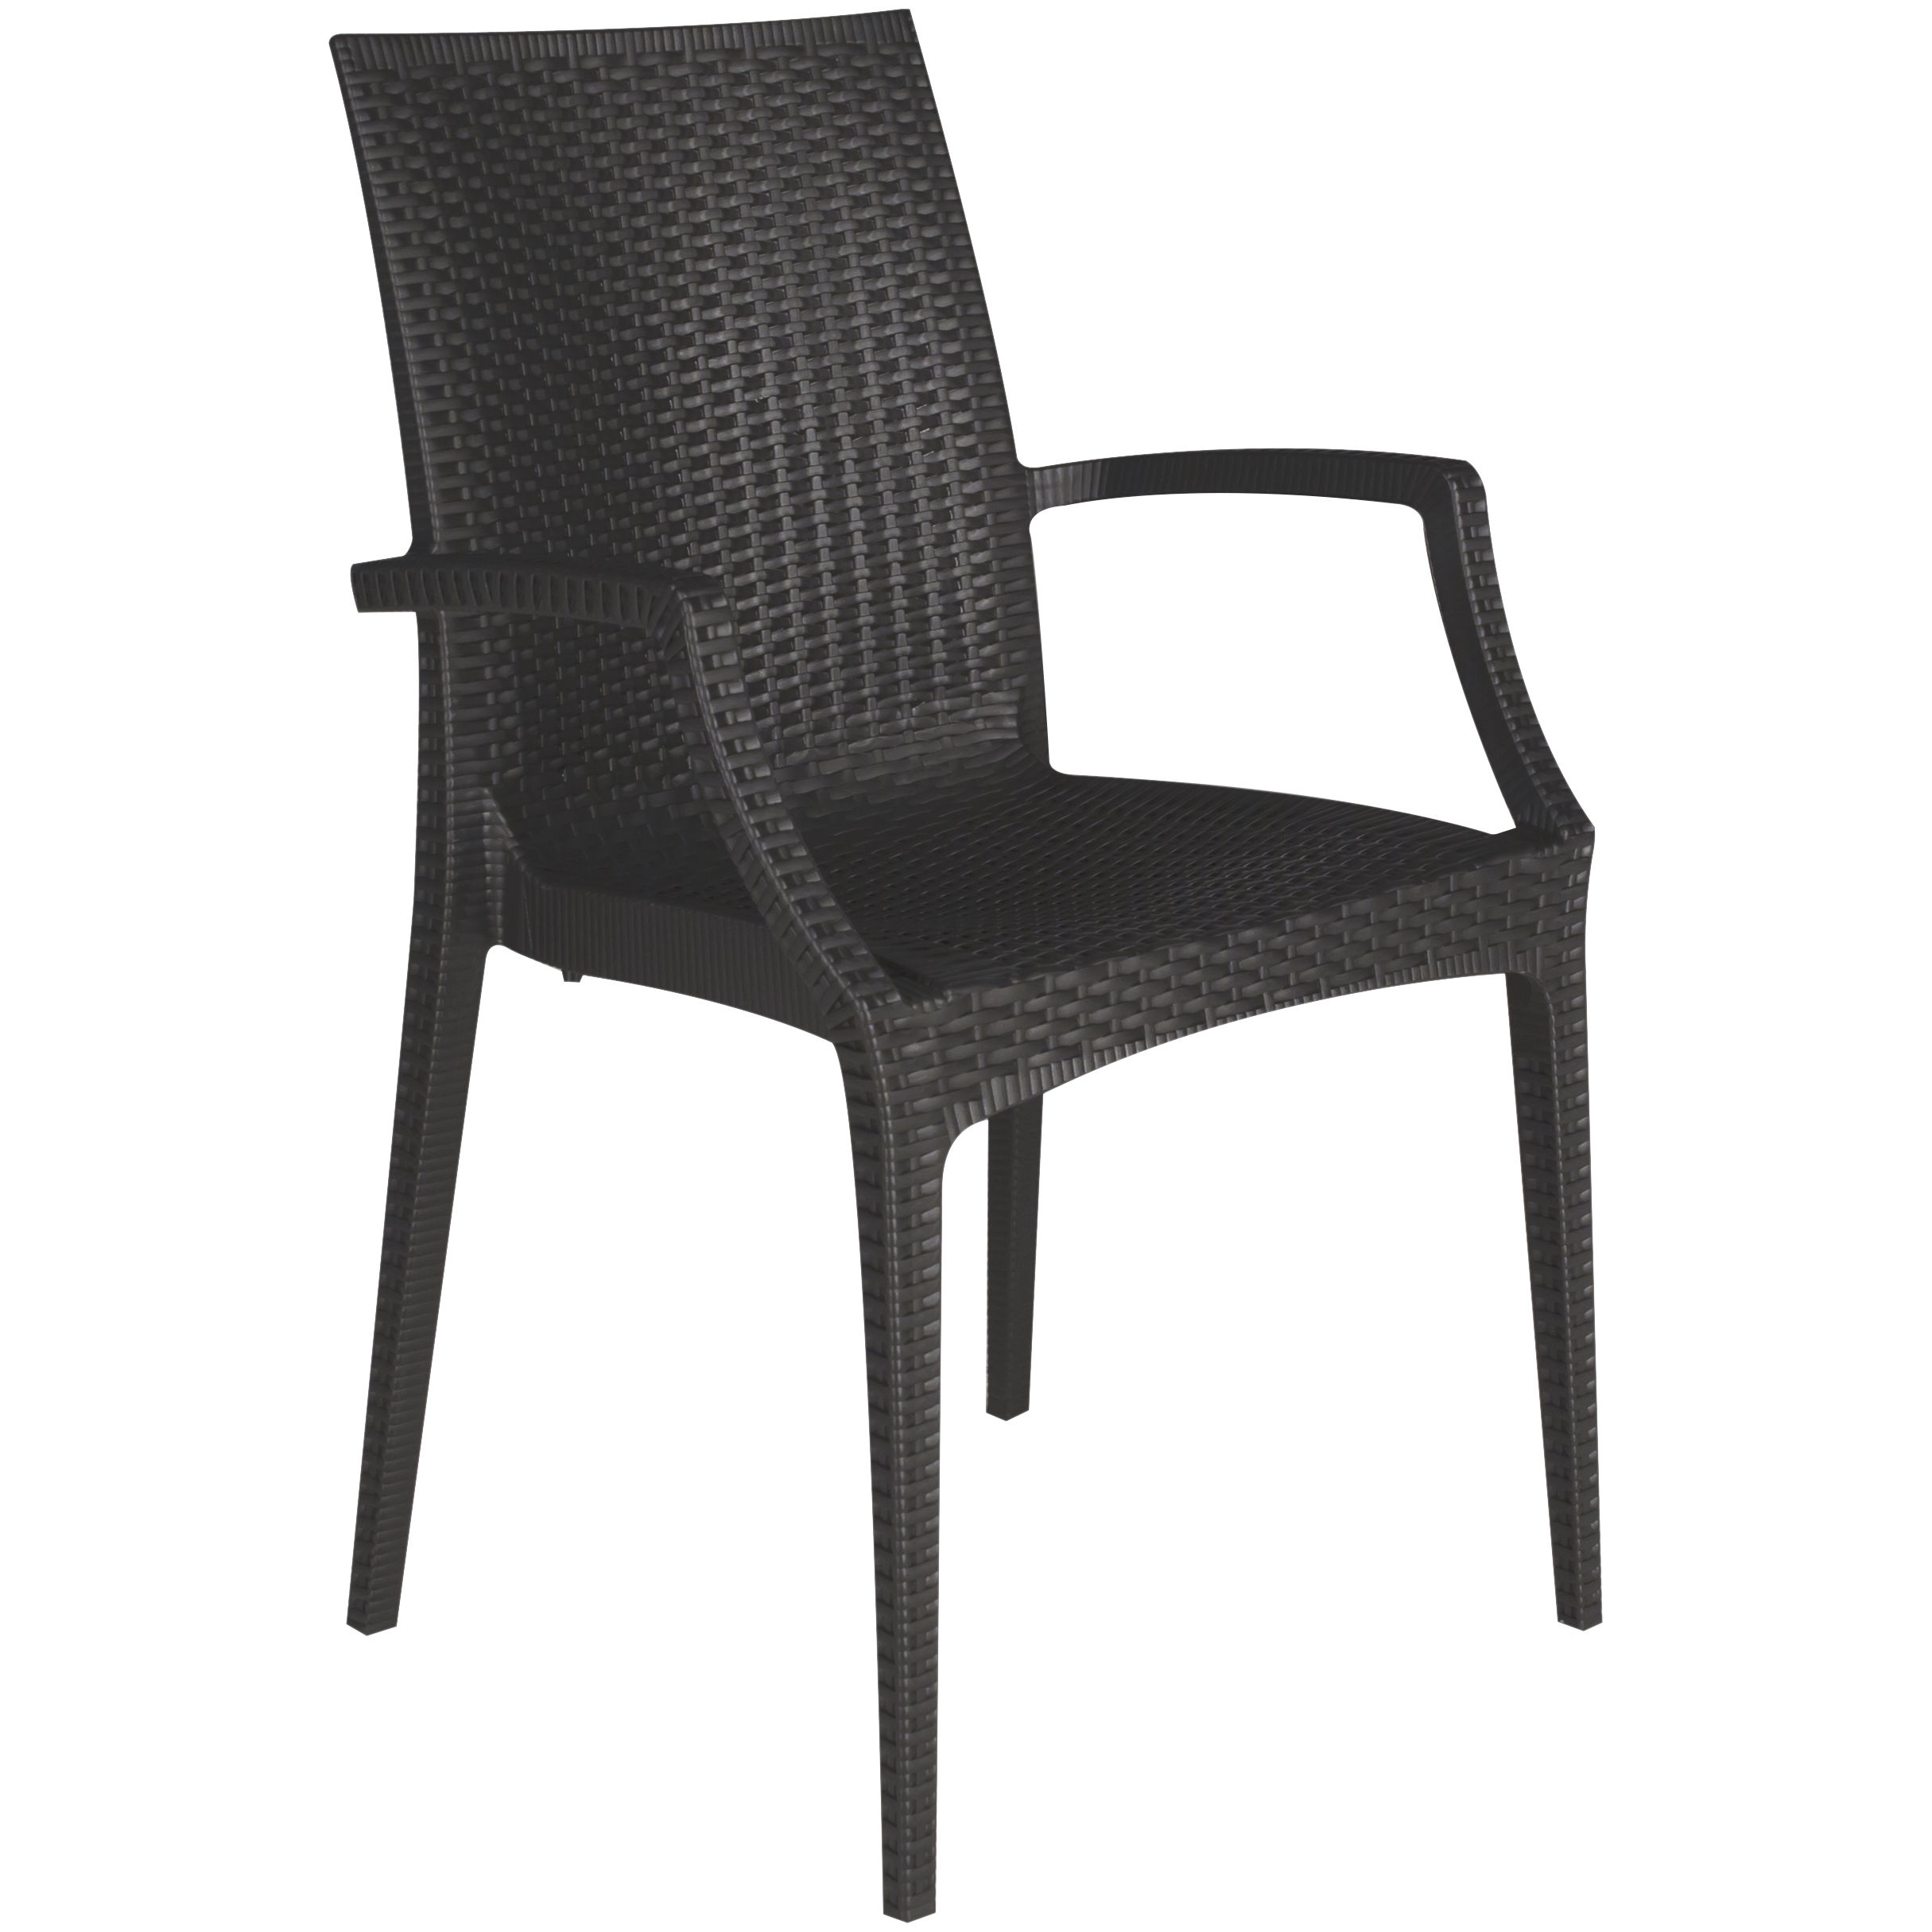 High Quality Italian Polymeric and Stackable Armchair - Made in Italy Ecological Armchair